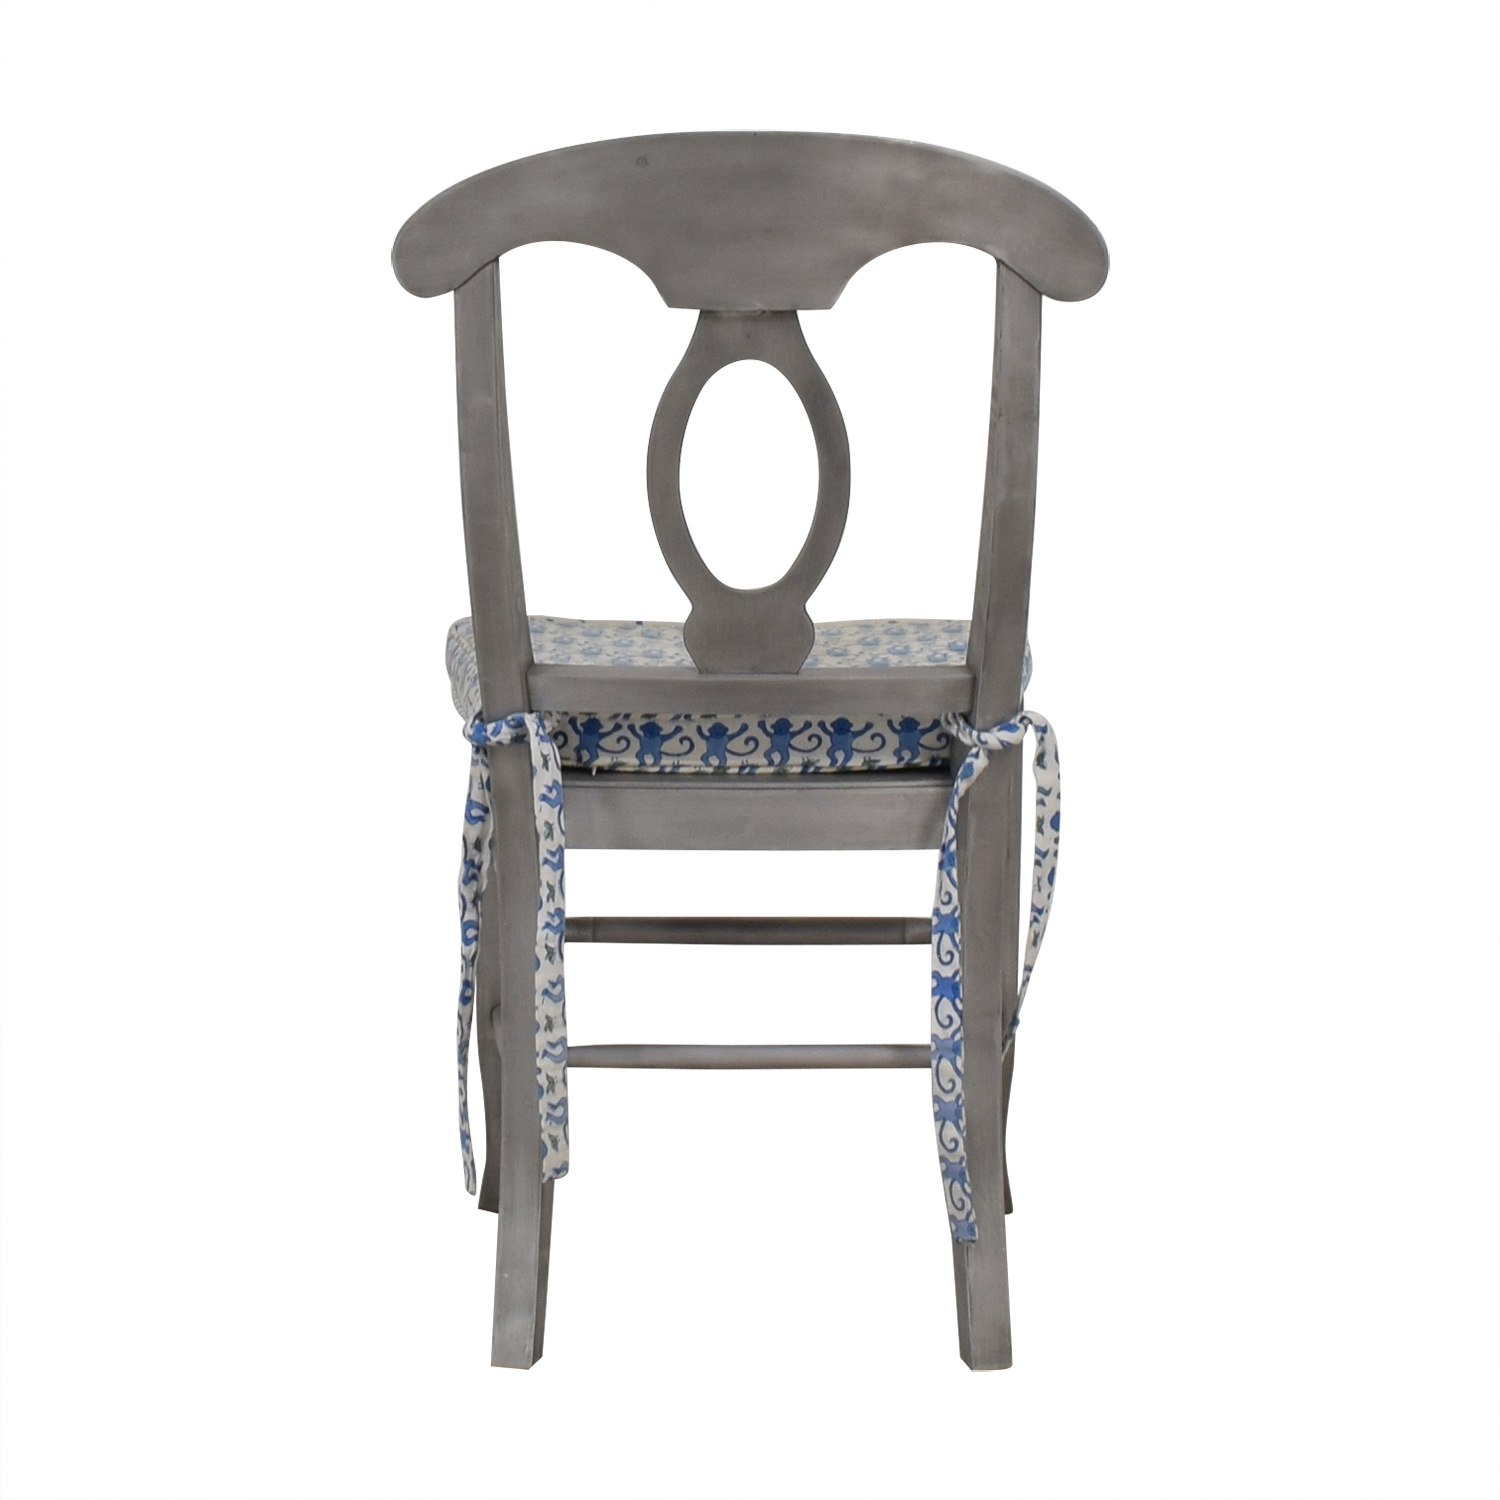 Pottery Barn Pottery Barn Aluminum Chair price